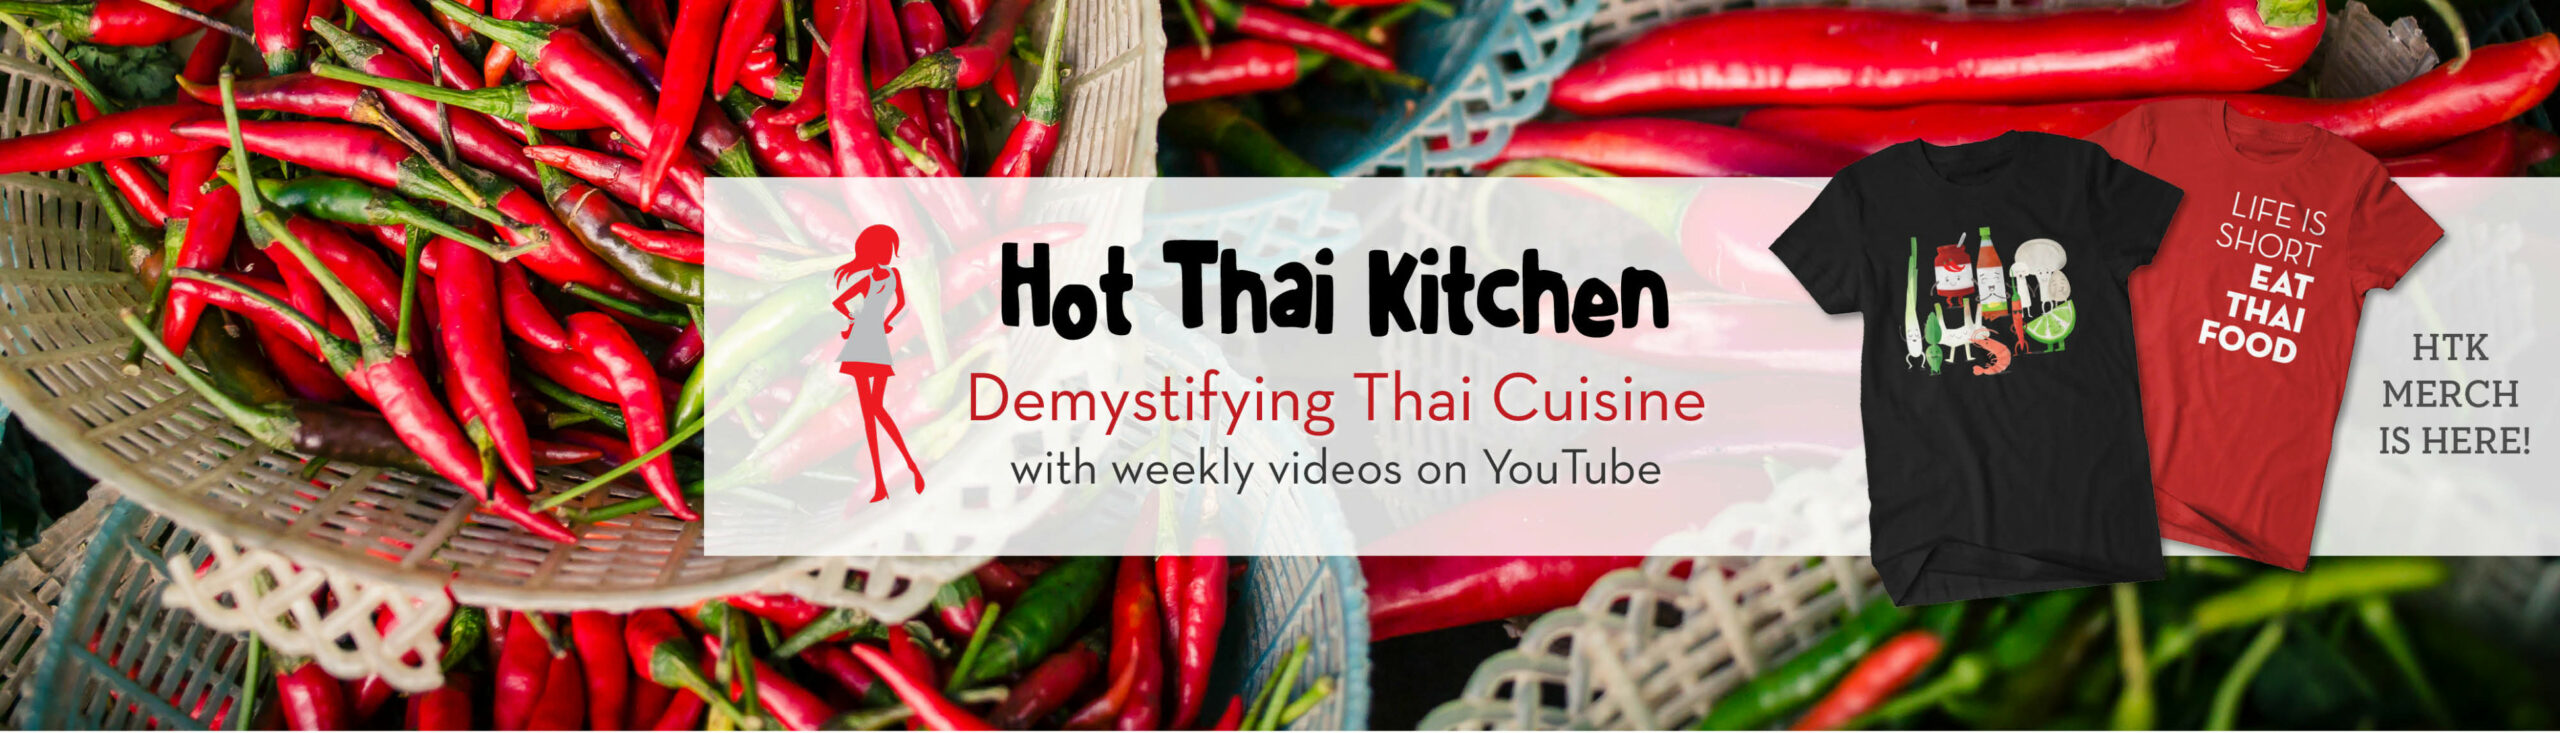 Thai Recipes and Video Tutorials by Hot Thai Kitchen - vegetarian recipe youtube